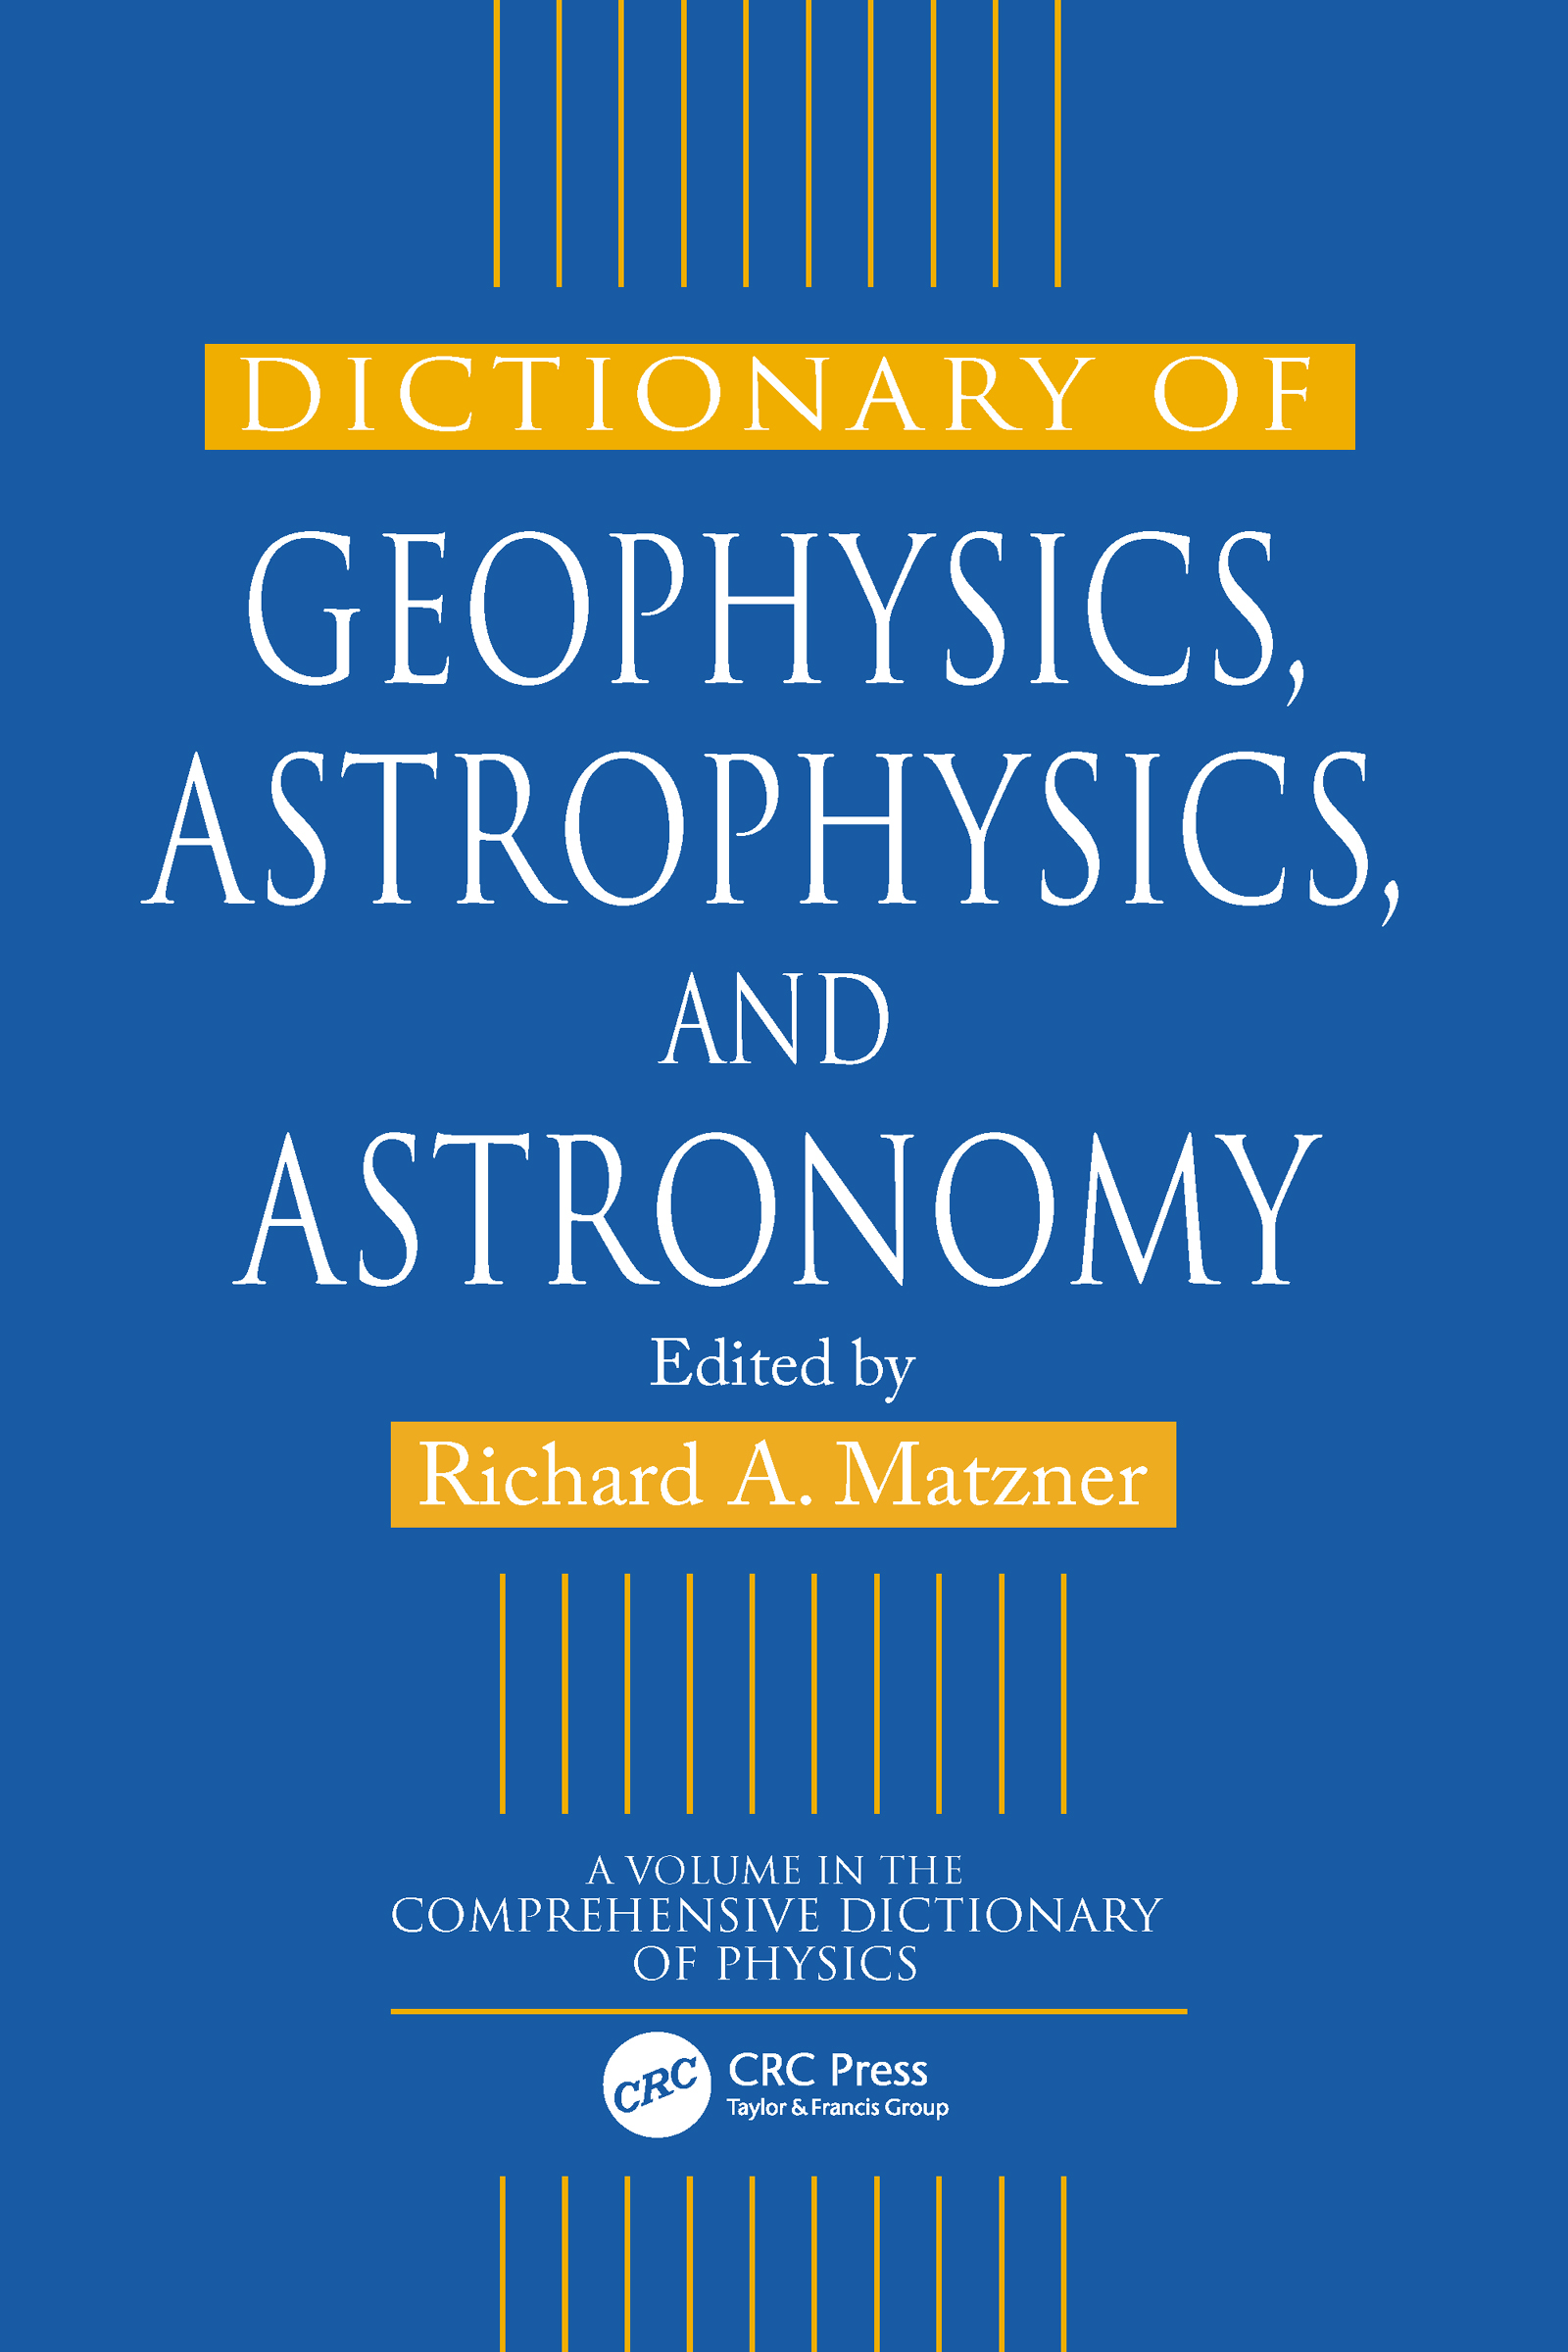 Dictionary of Geophysics, Astrophysics, and Astronomy: 1st Edition (Hardback) book cover